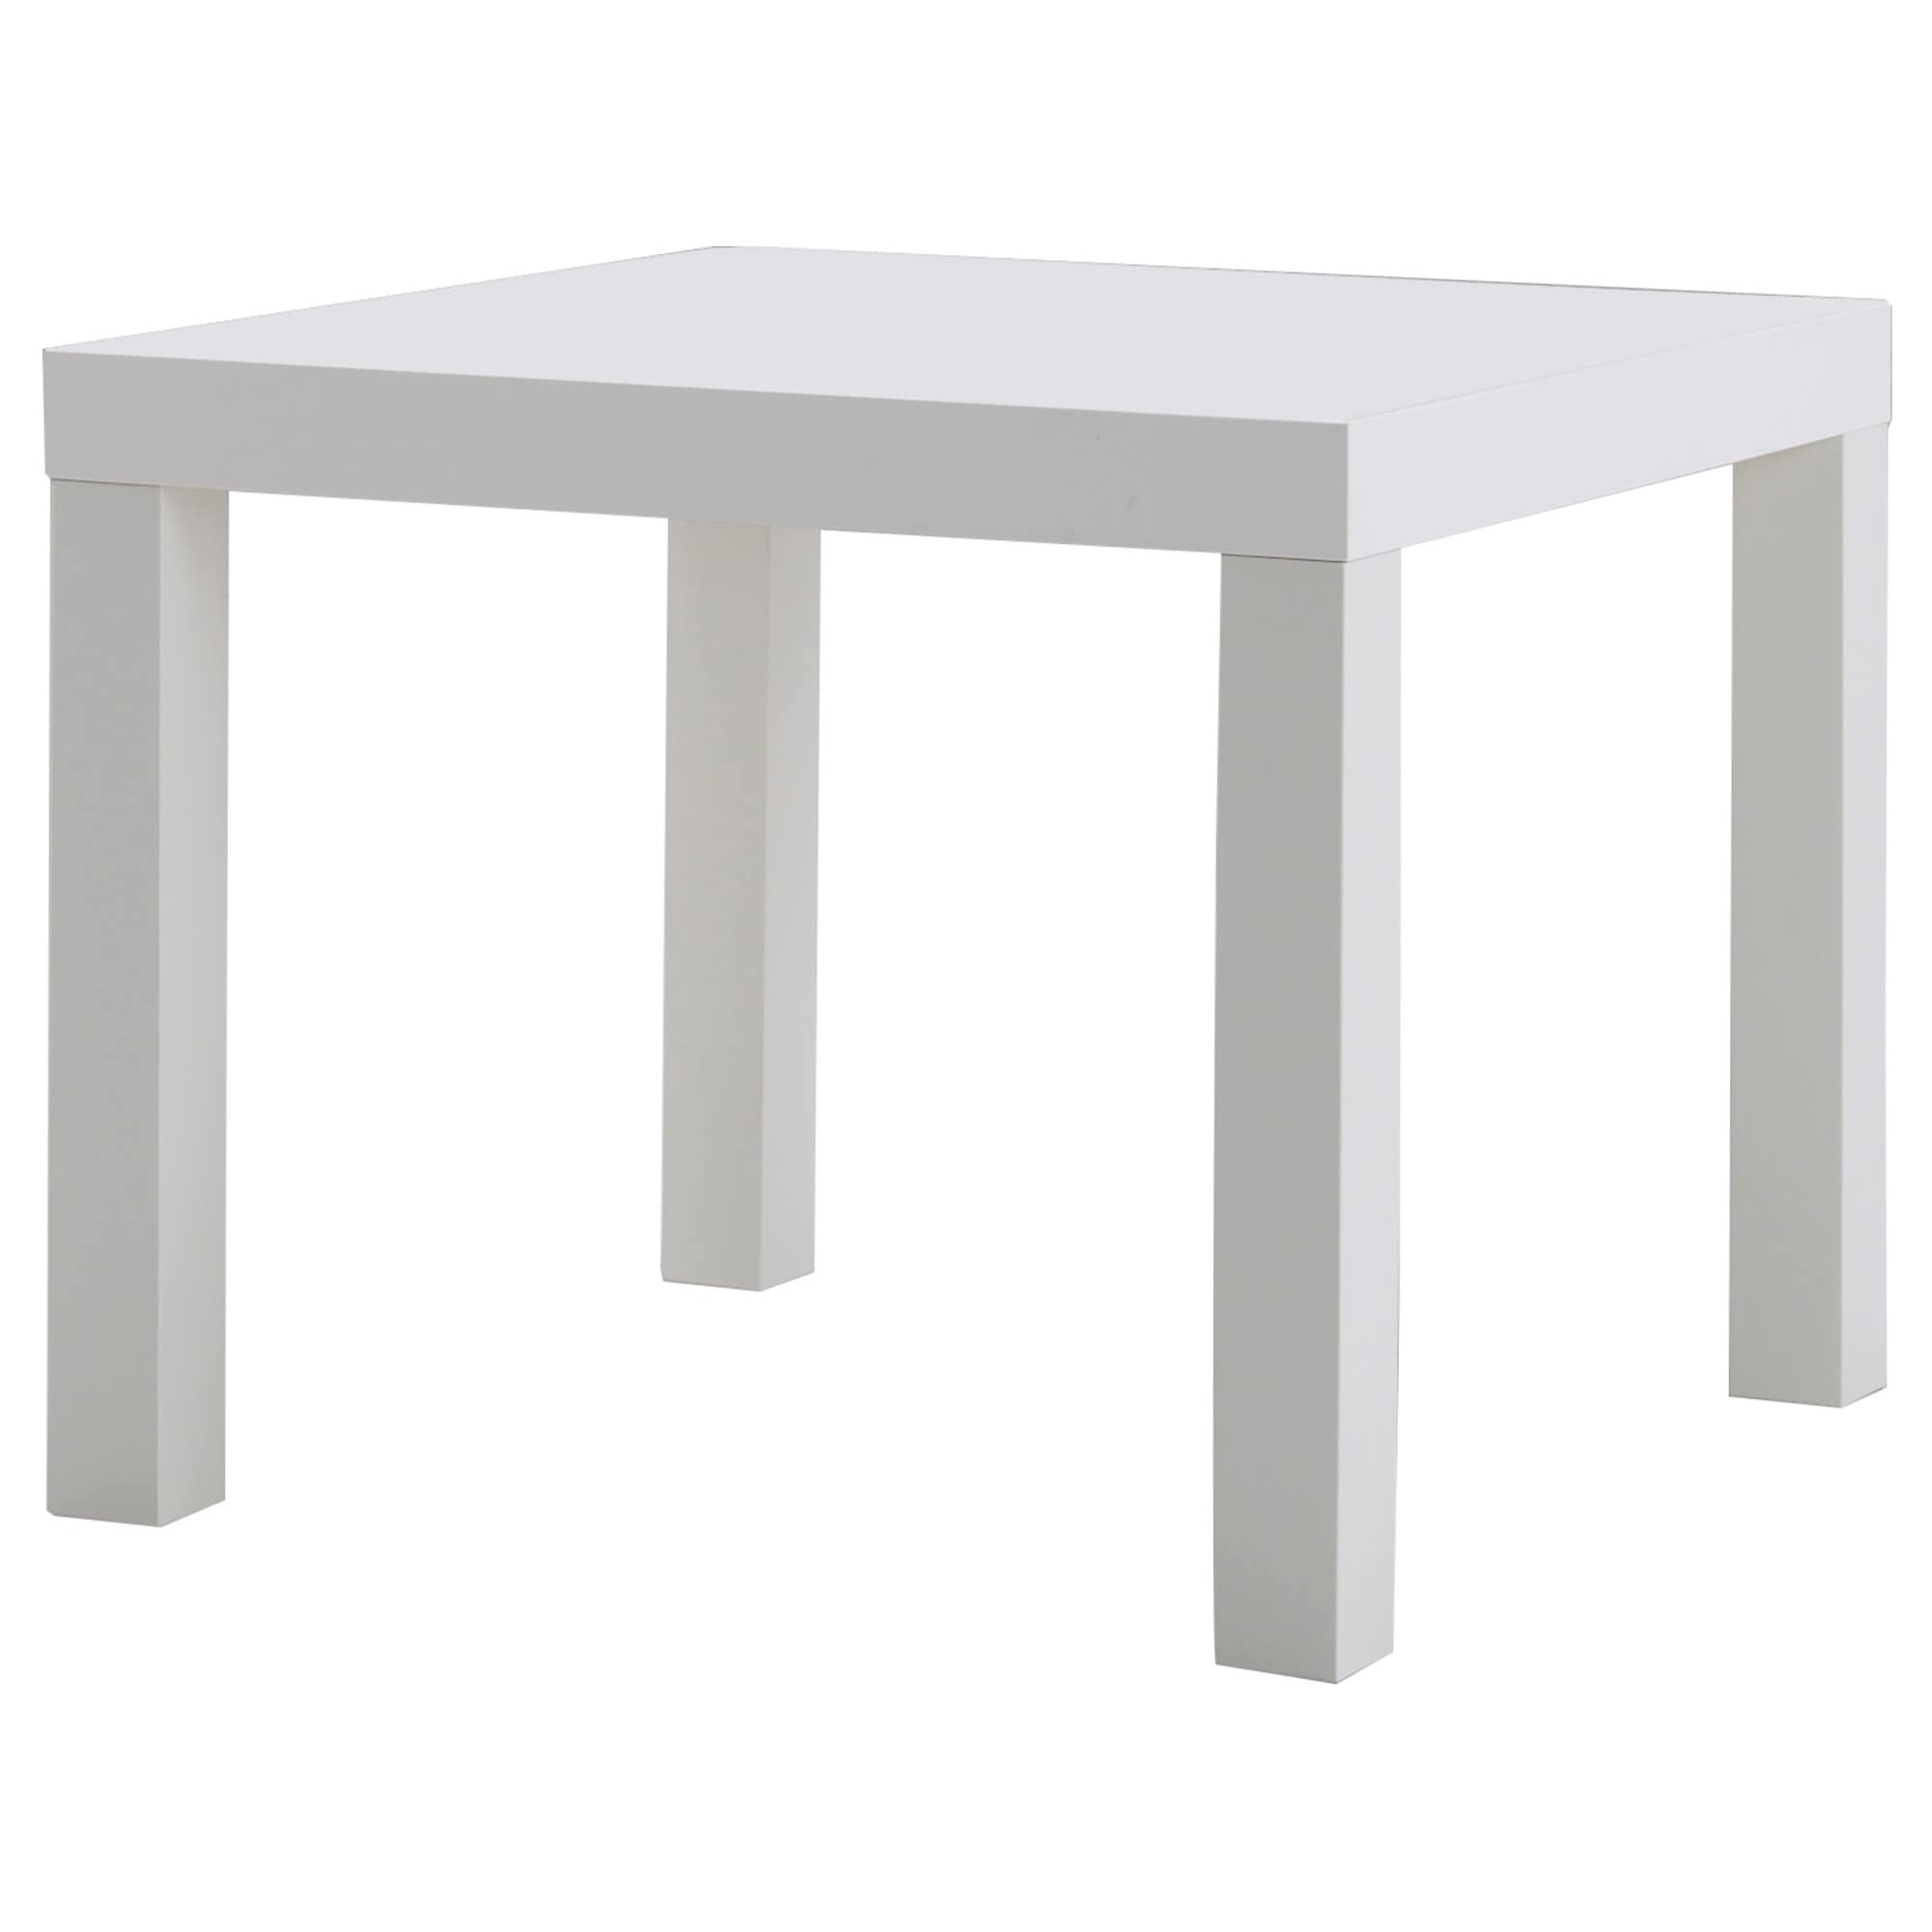 square lounge table